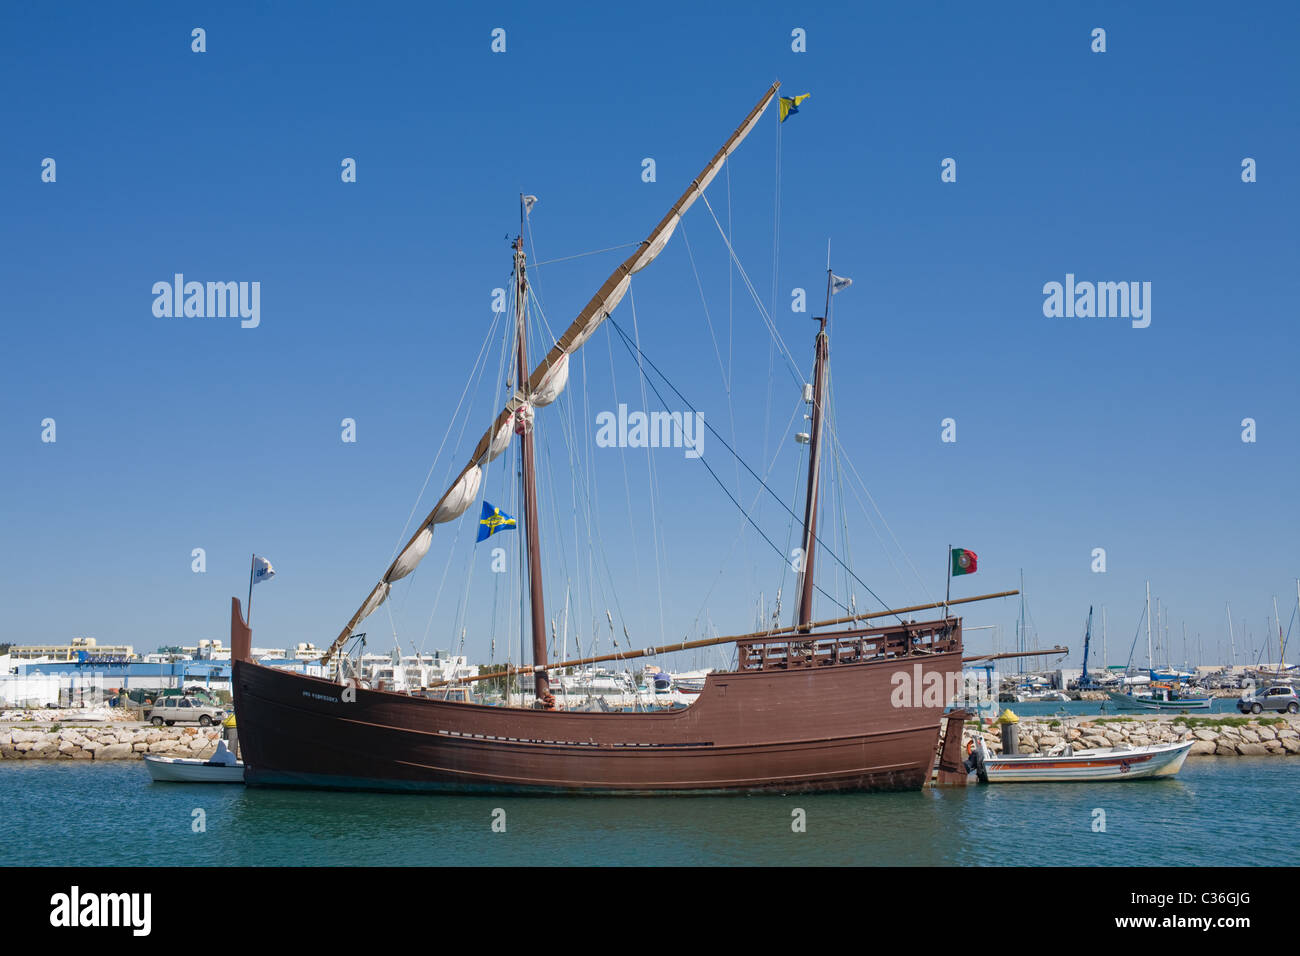 The boat that changed the world, a caravel, lateen sails, in Lagos harbor, Portugal, the Algarve - Stock Image